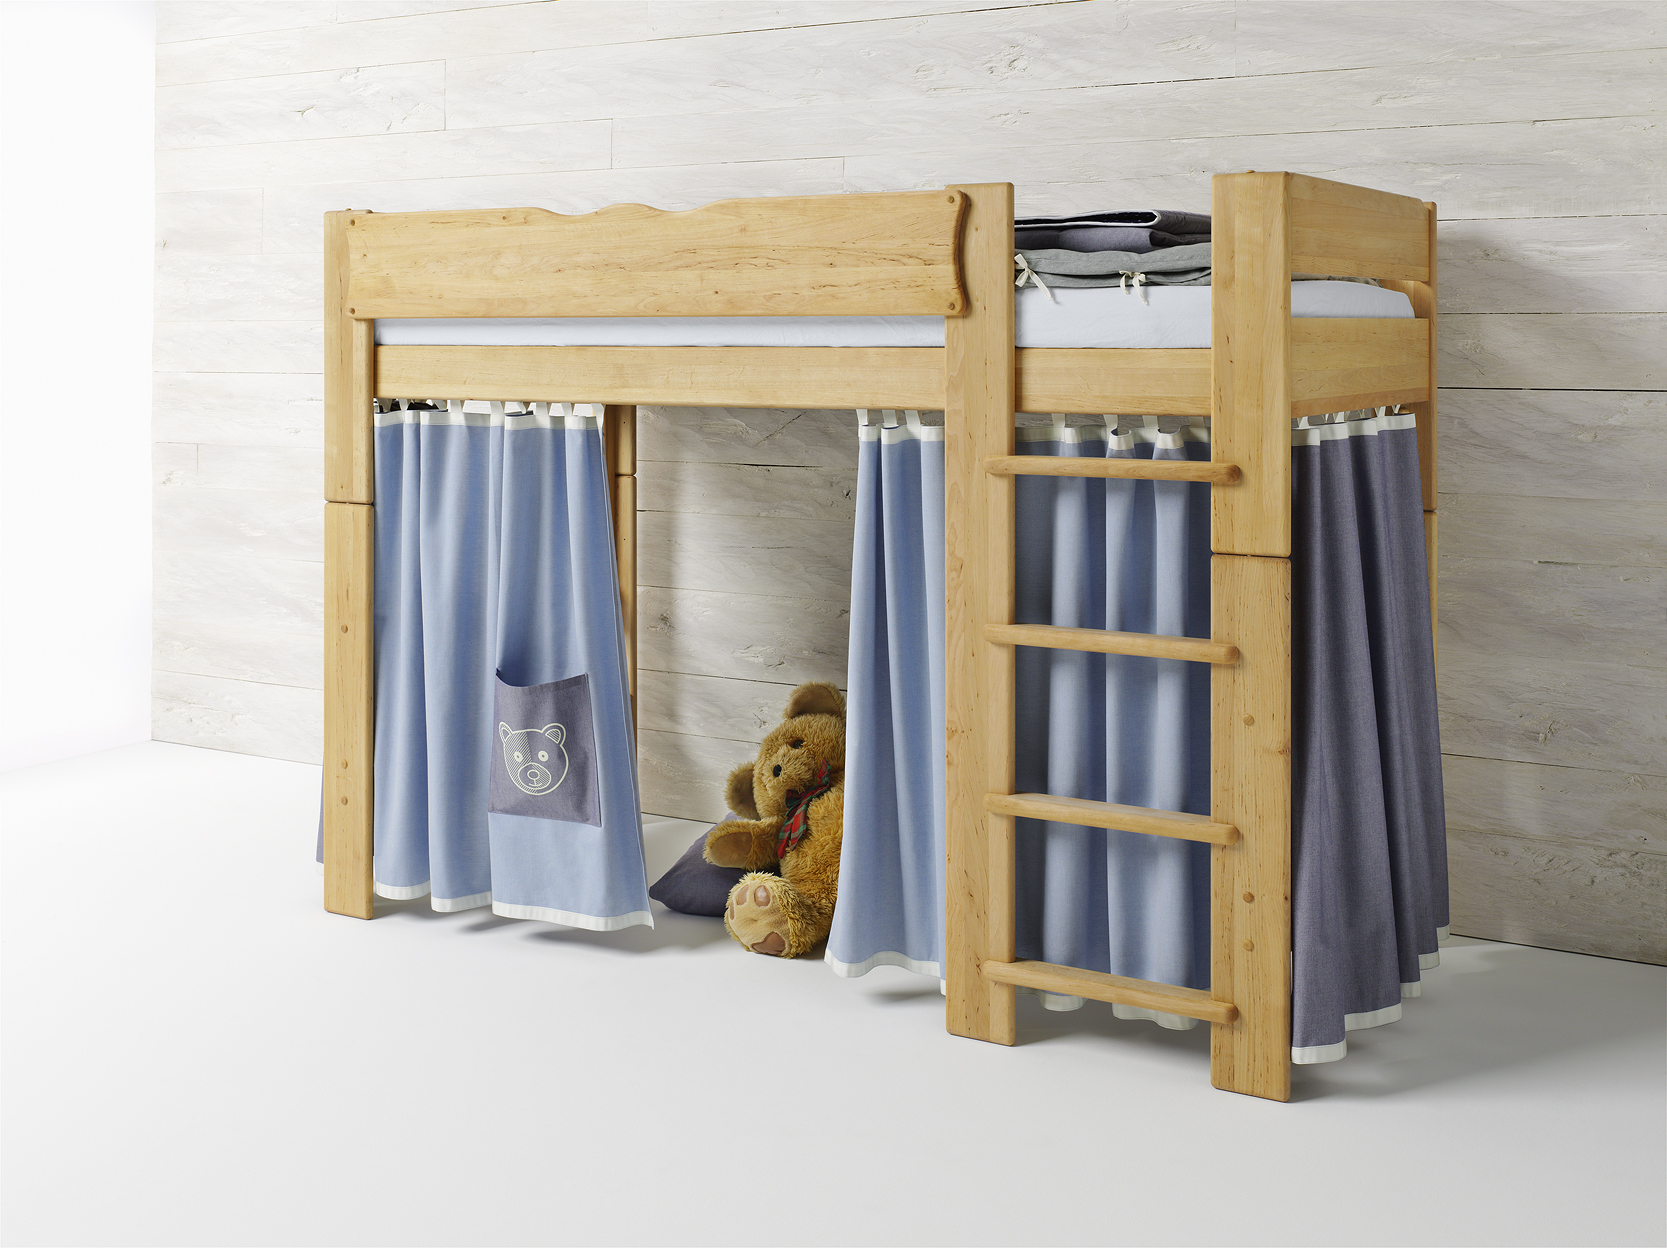 hochbett aus erle f r kinderzimmer b r by team 7 nat rlich wohnen. Black Bedroom Furniture Sets. Home Design Ideas